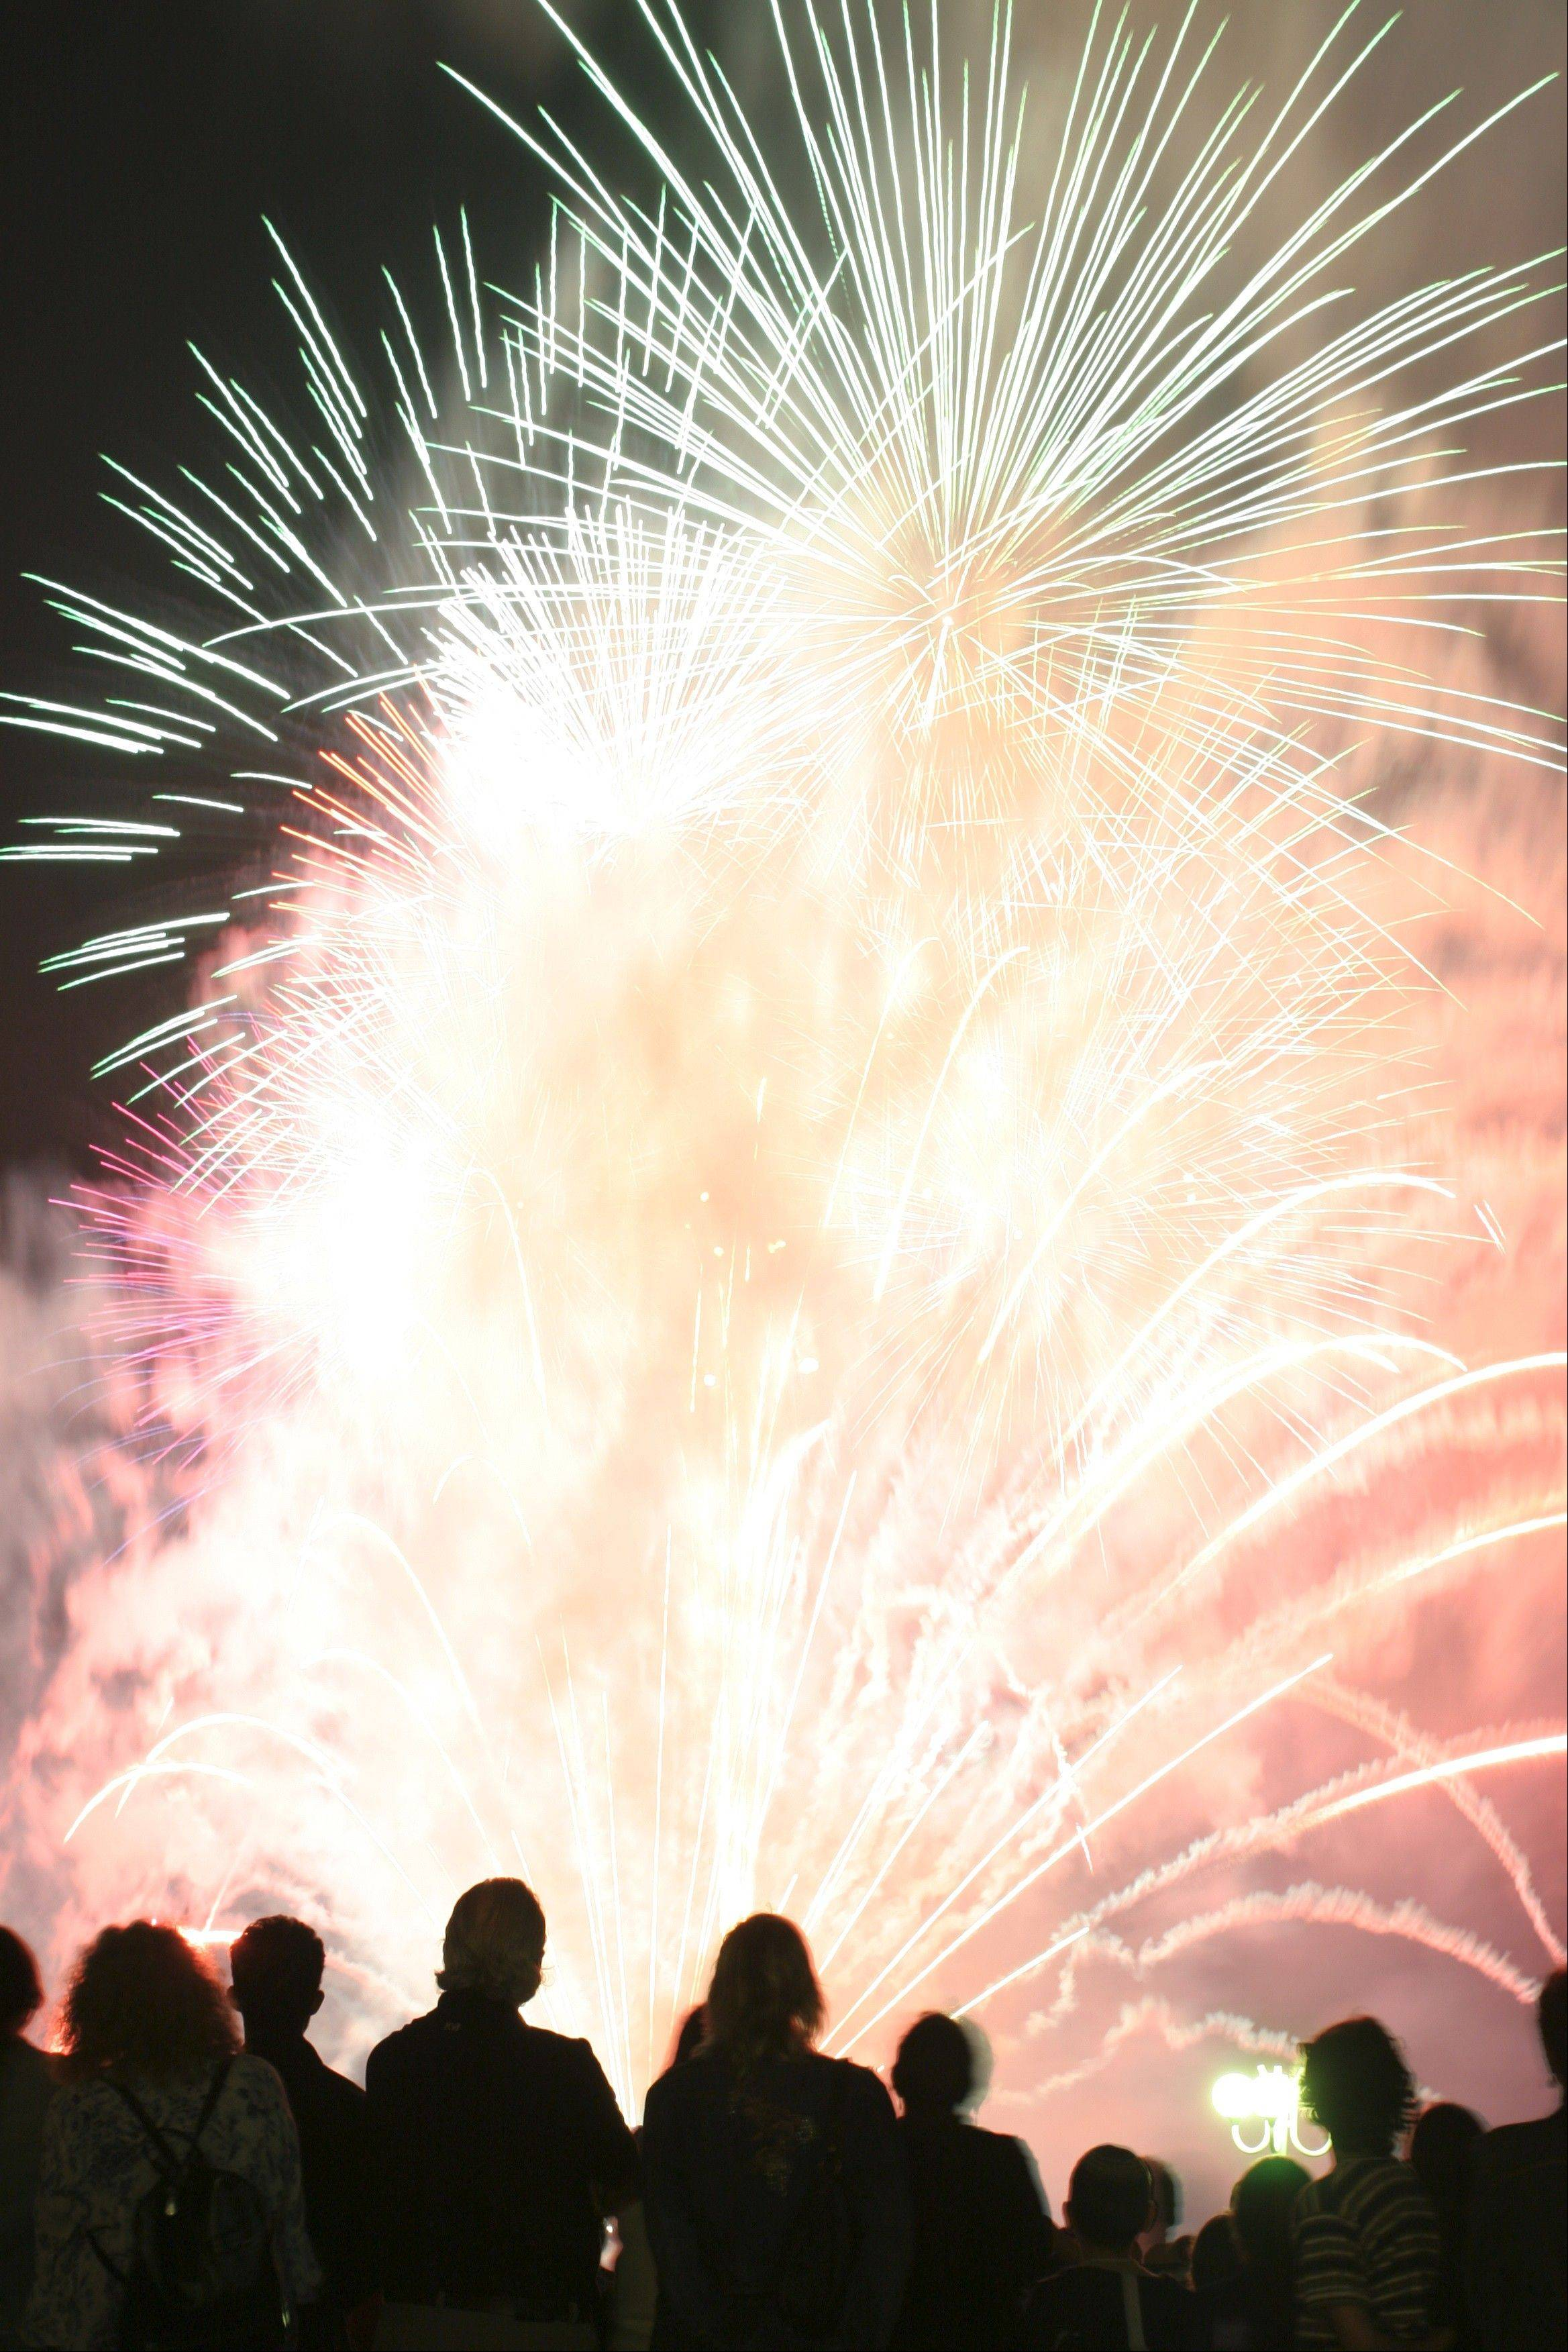 Fireworks fans will be in their element in the coming days as Independence Day fireworks light up the local skies.